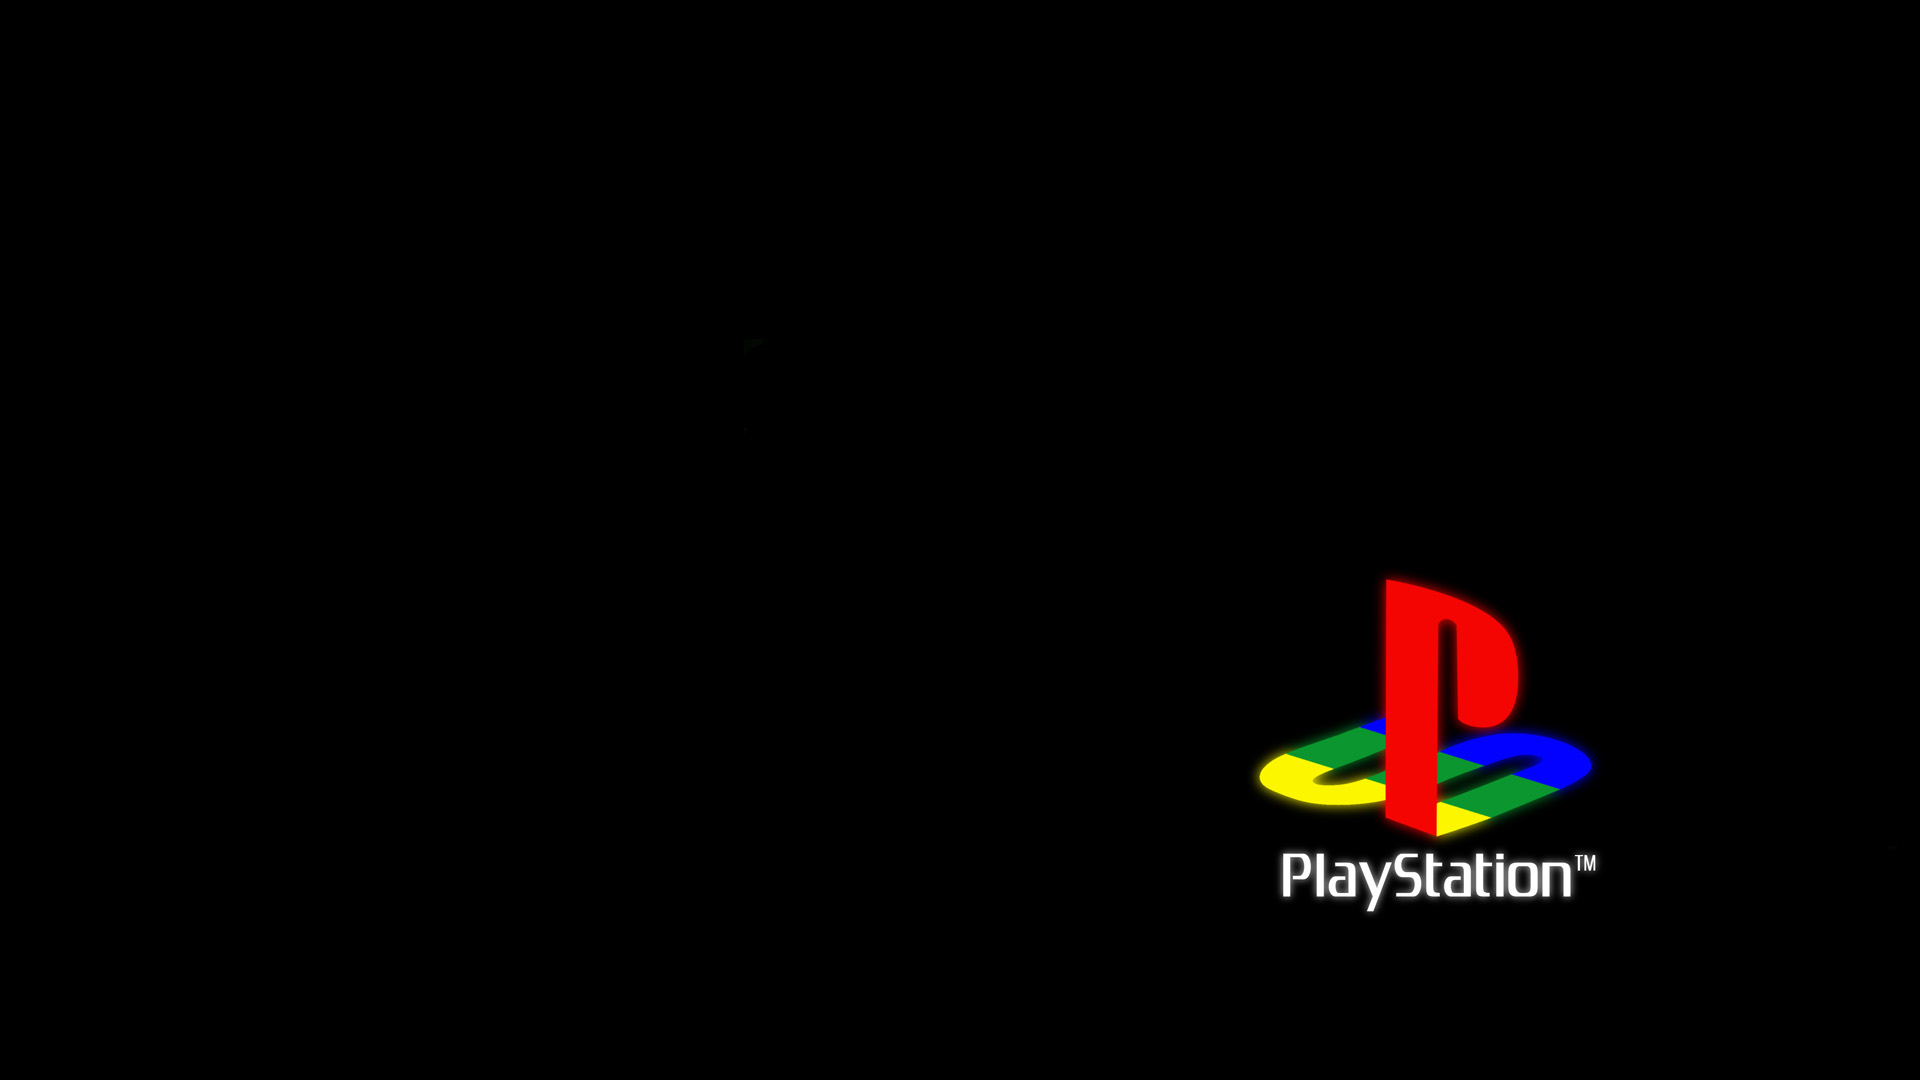 PS1 Wallpaper - WallpaperSafari